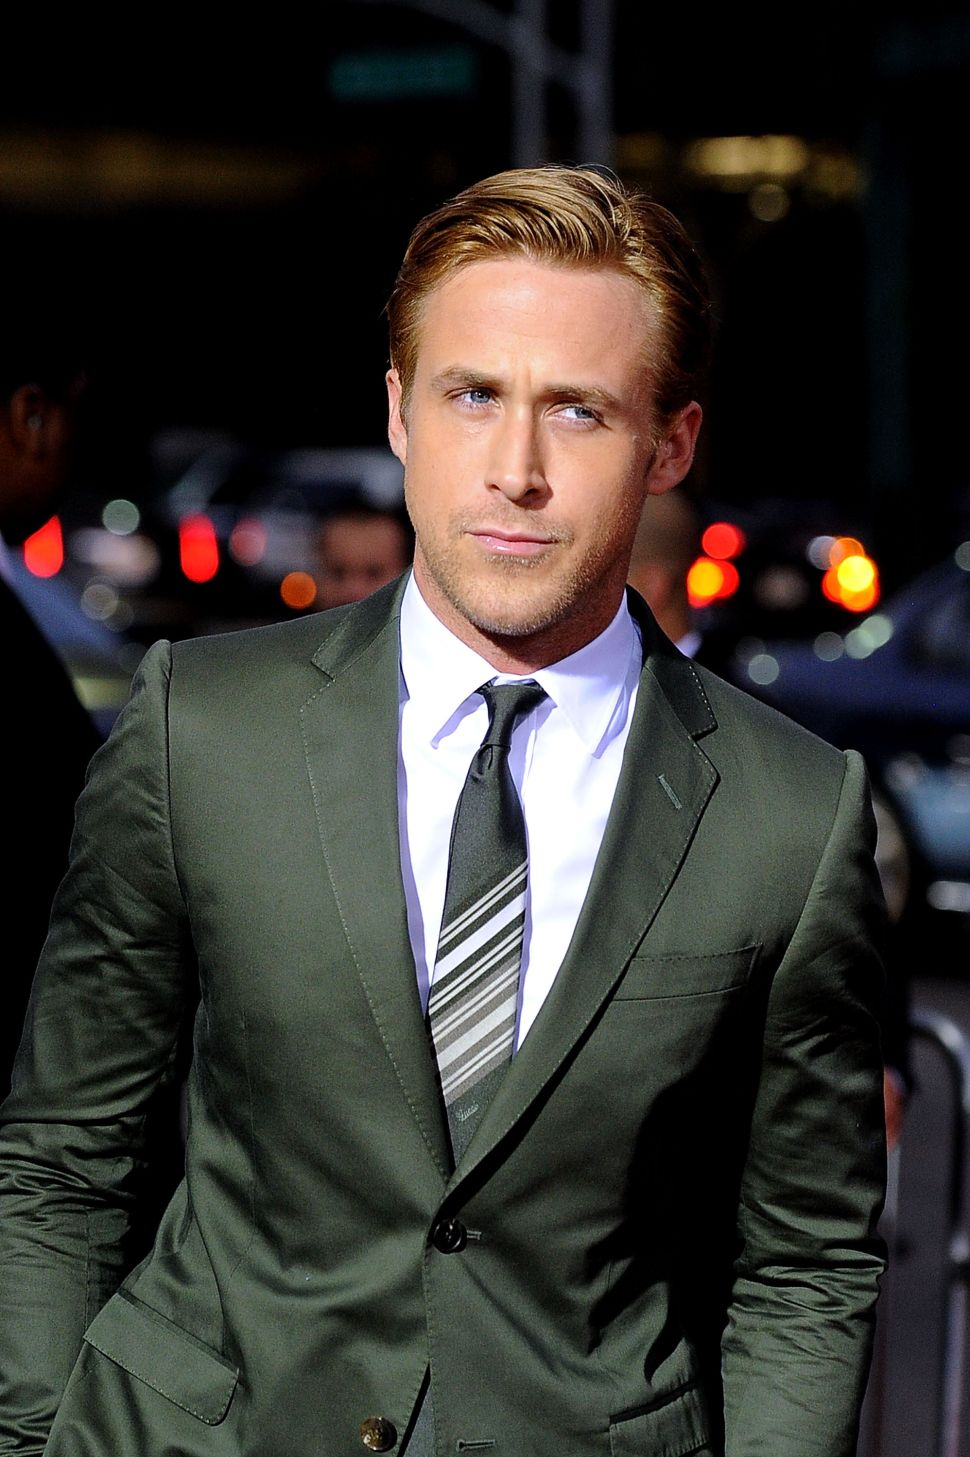 Breaking: Ryan Gosling Saves British Woman From Taxi Collision on 6th Ave